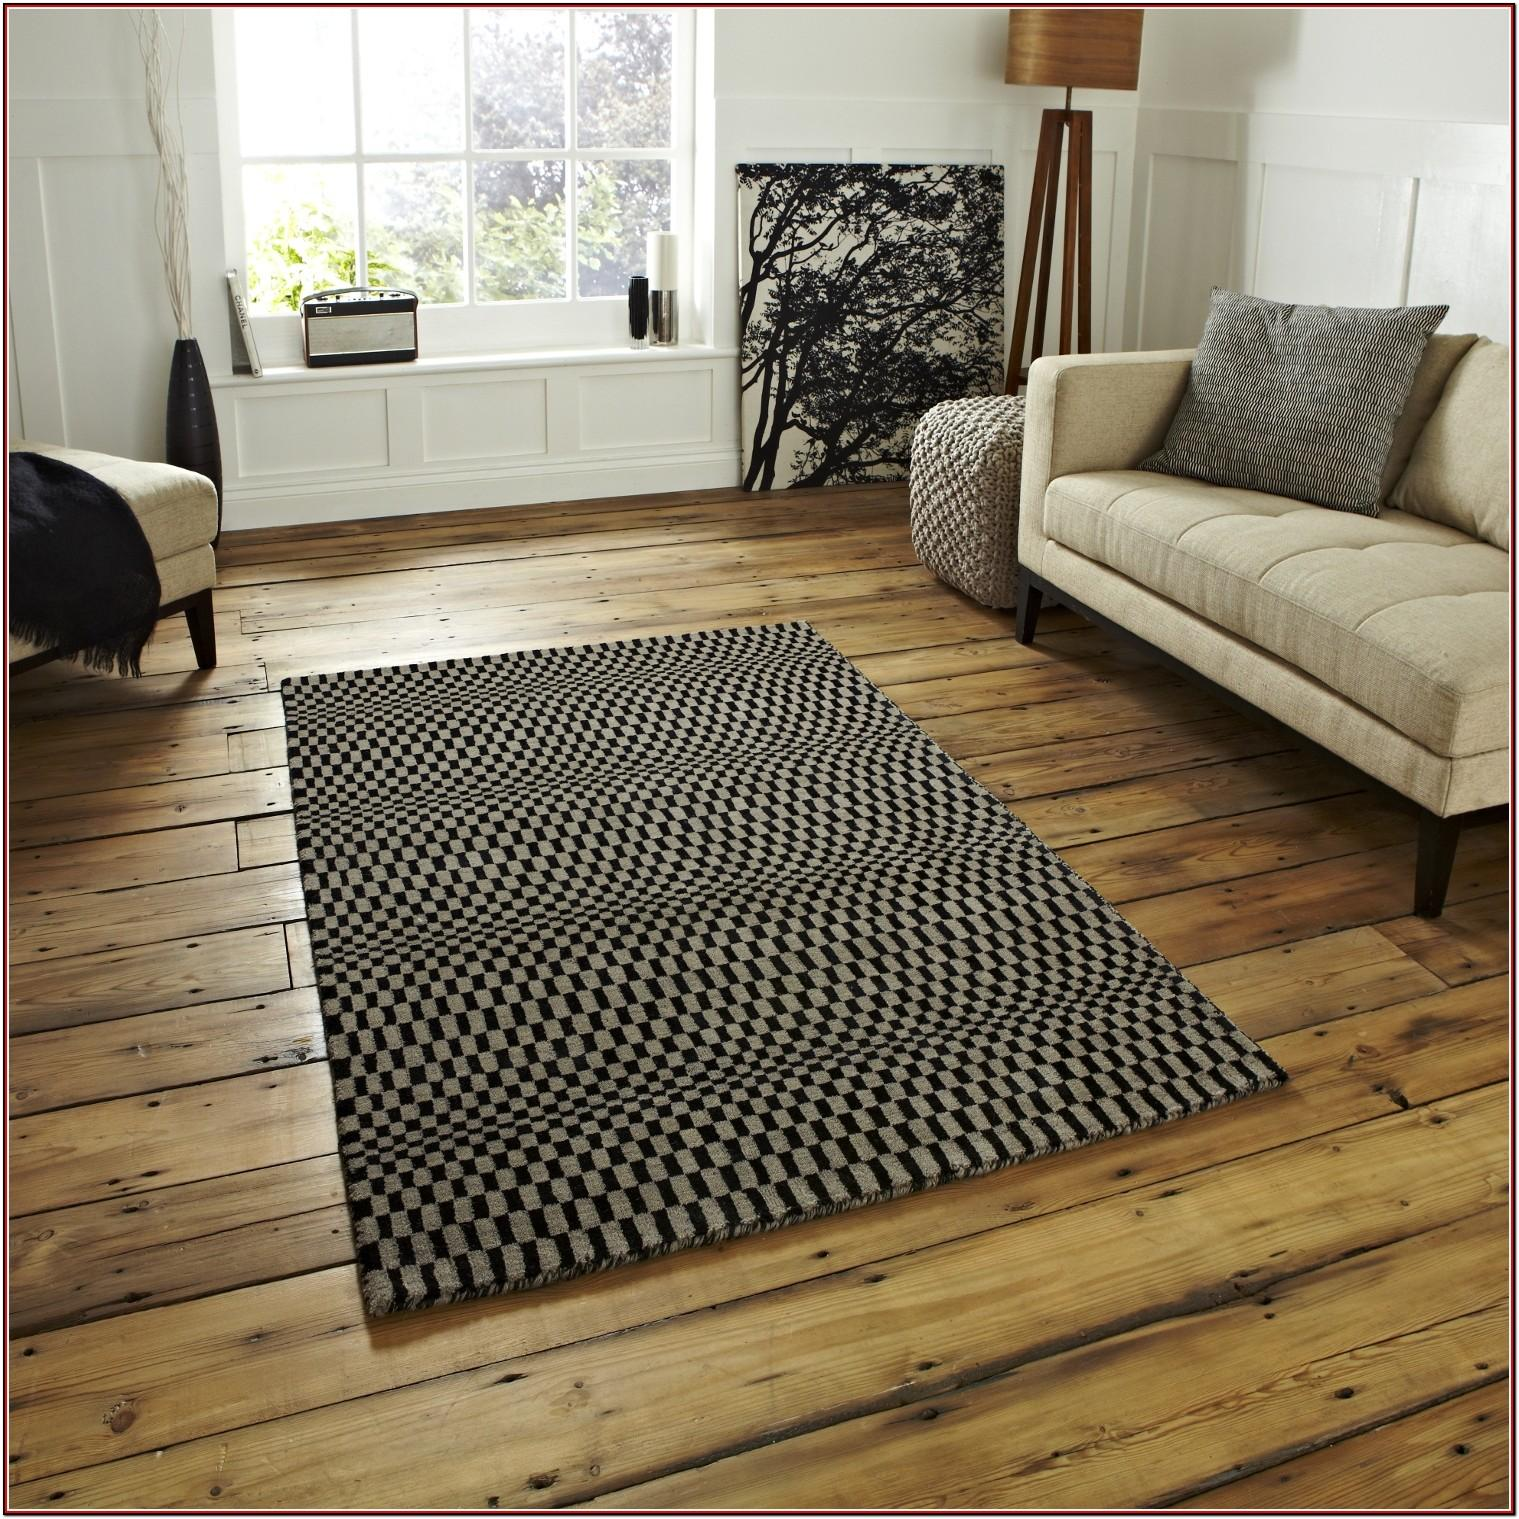 Large Living Room Rugs 9x12